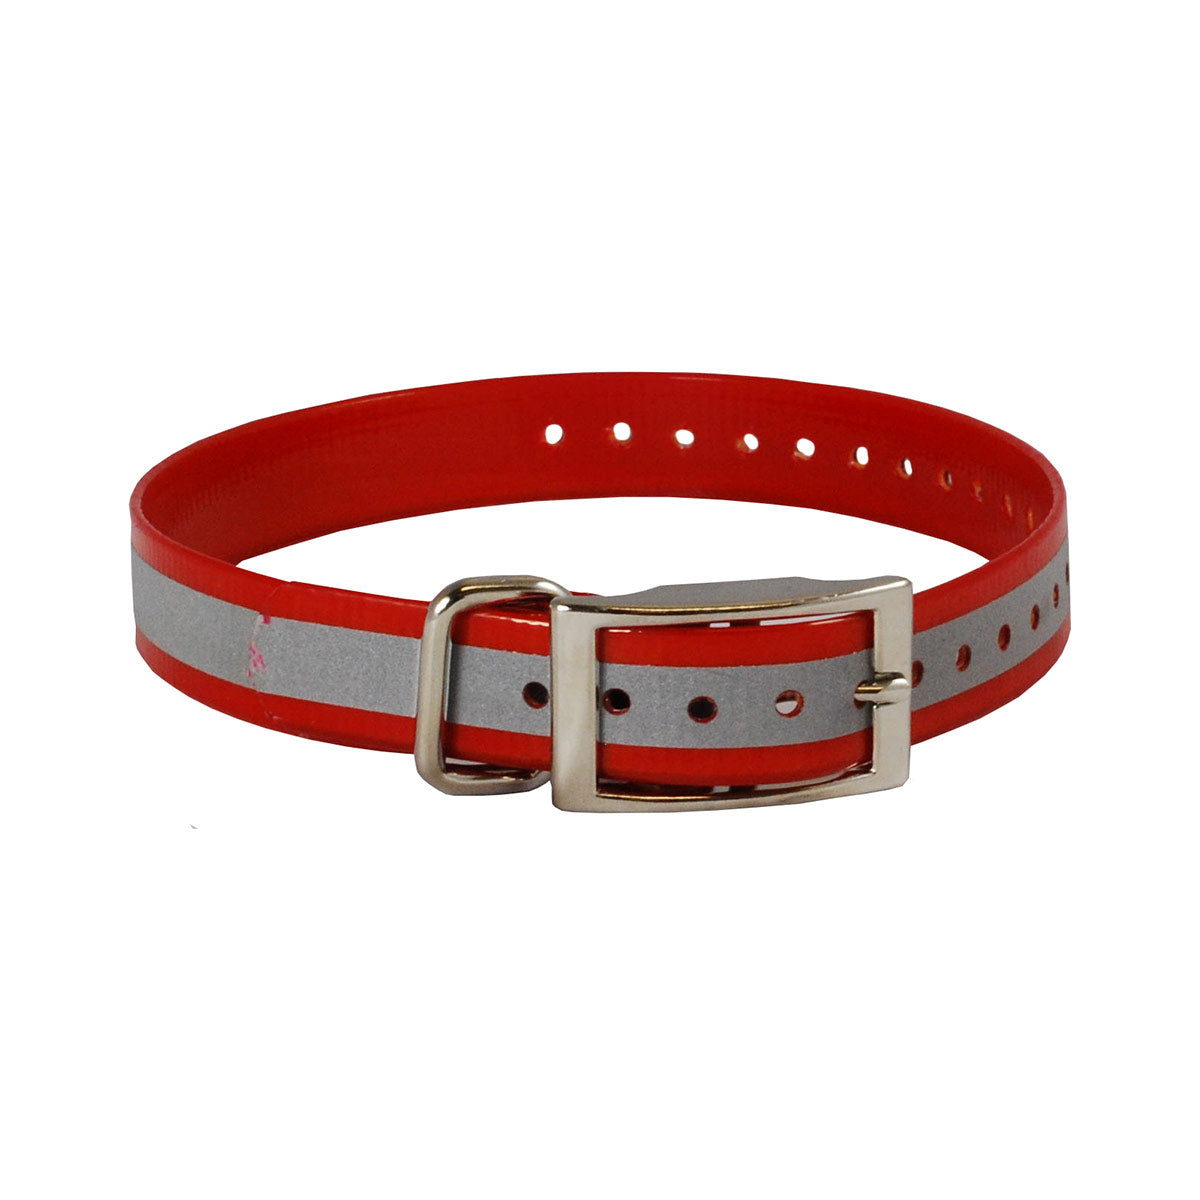 "The Buzzard's Roost Reflective Collar Strap 1"" Red 1"" x 24"" Dog GPS Tracking - London the Local"